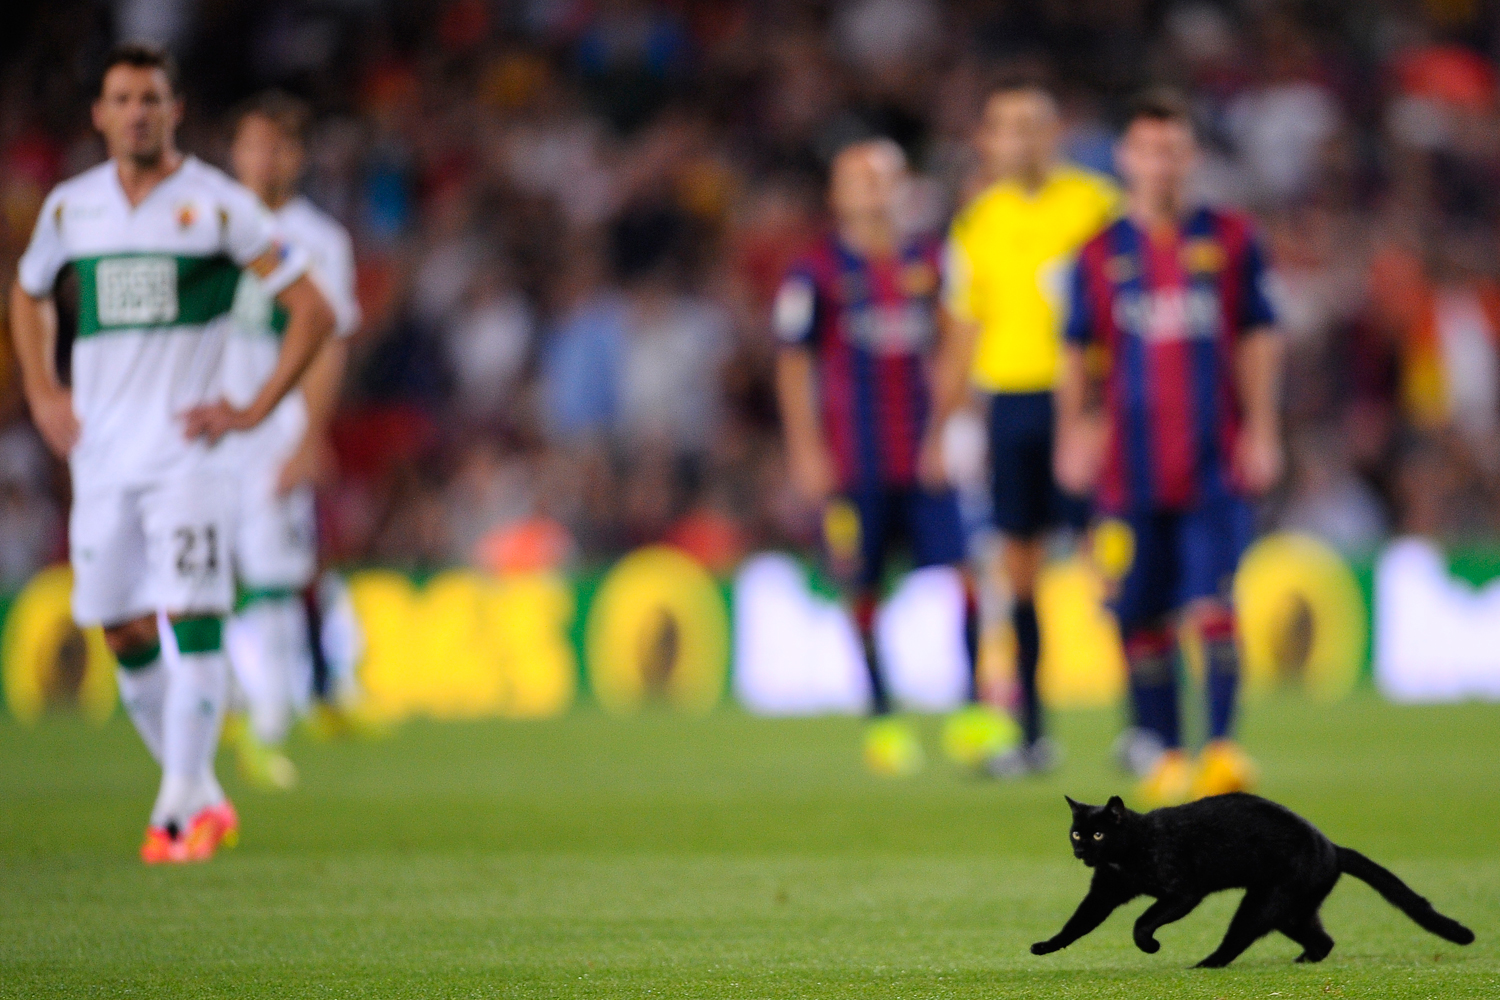 A cat runs on the pitch during a Spanish La Liga soccer match between FC Barcelona and Elche at the Camp Nou stadium in Barcelona, Spain, Sunday, Aug. 24, 2014.